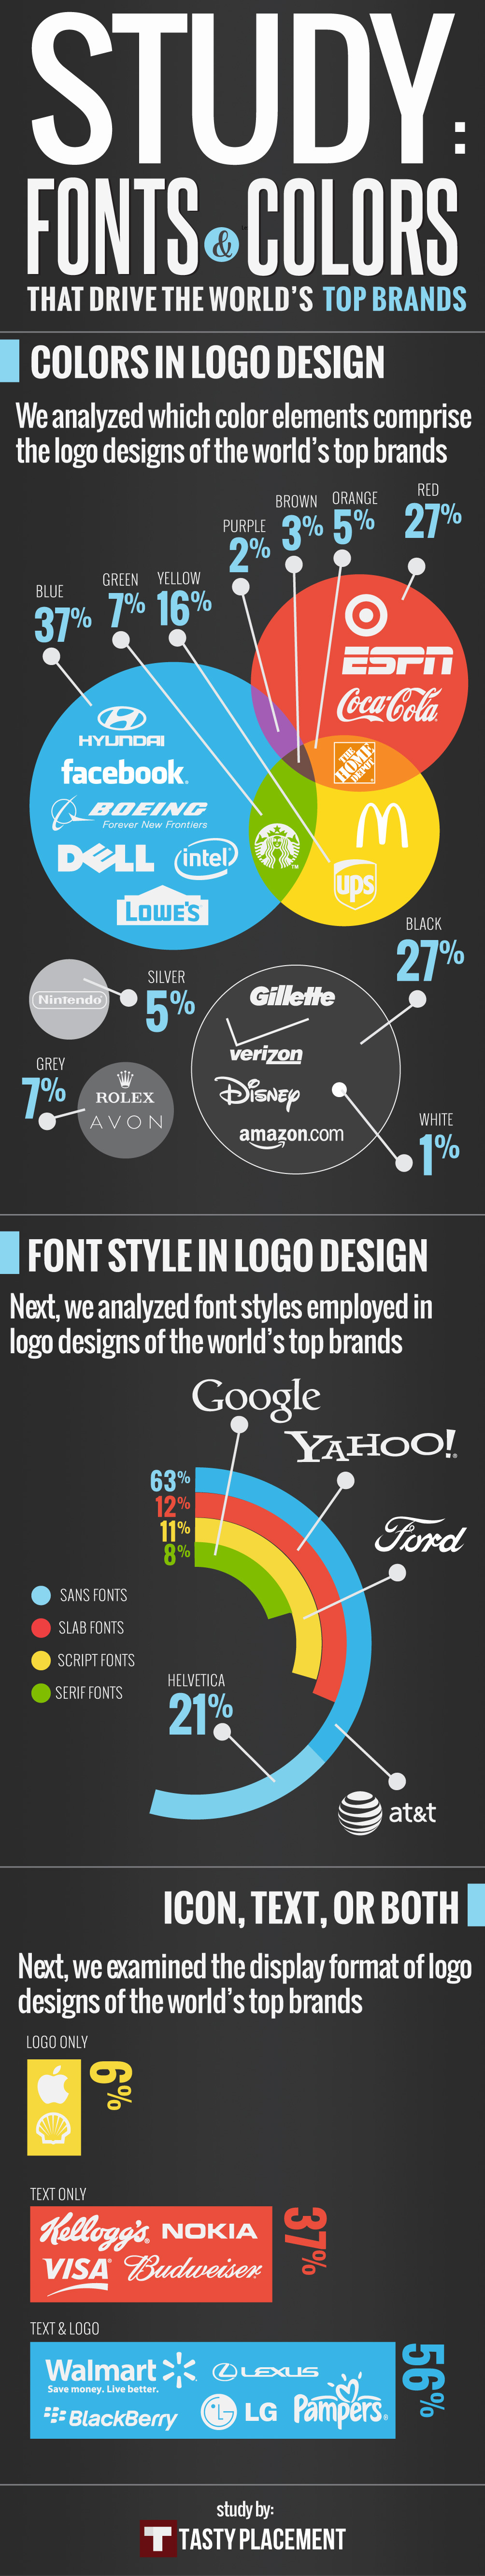 Font and Color in Logo Design [Infographic]